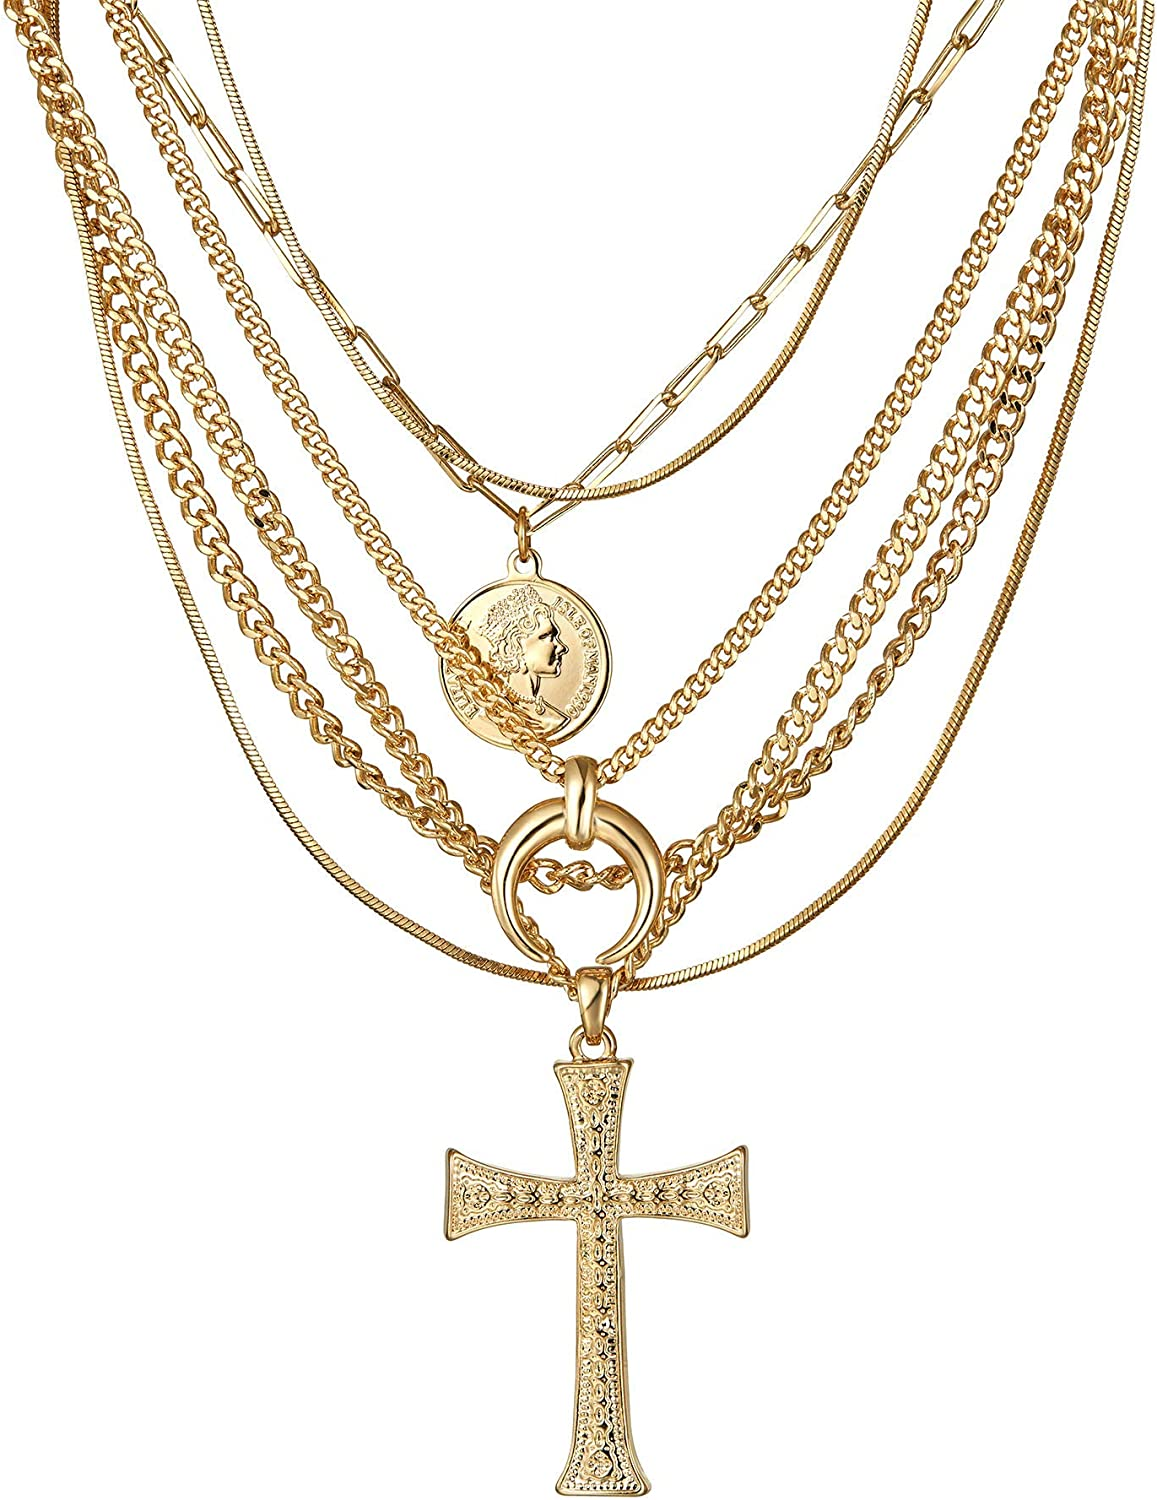 ACC PLANET Layered Choker Necklace, 14K Gold Plated Cross Pendant Necklace Set Gold Layering Necklaces for Women